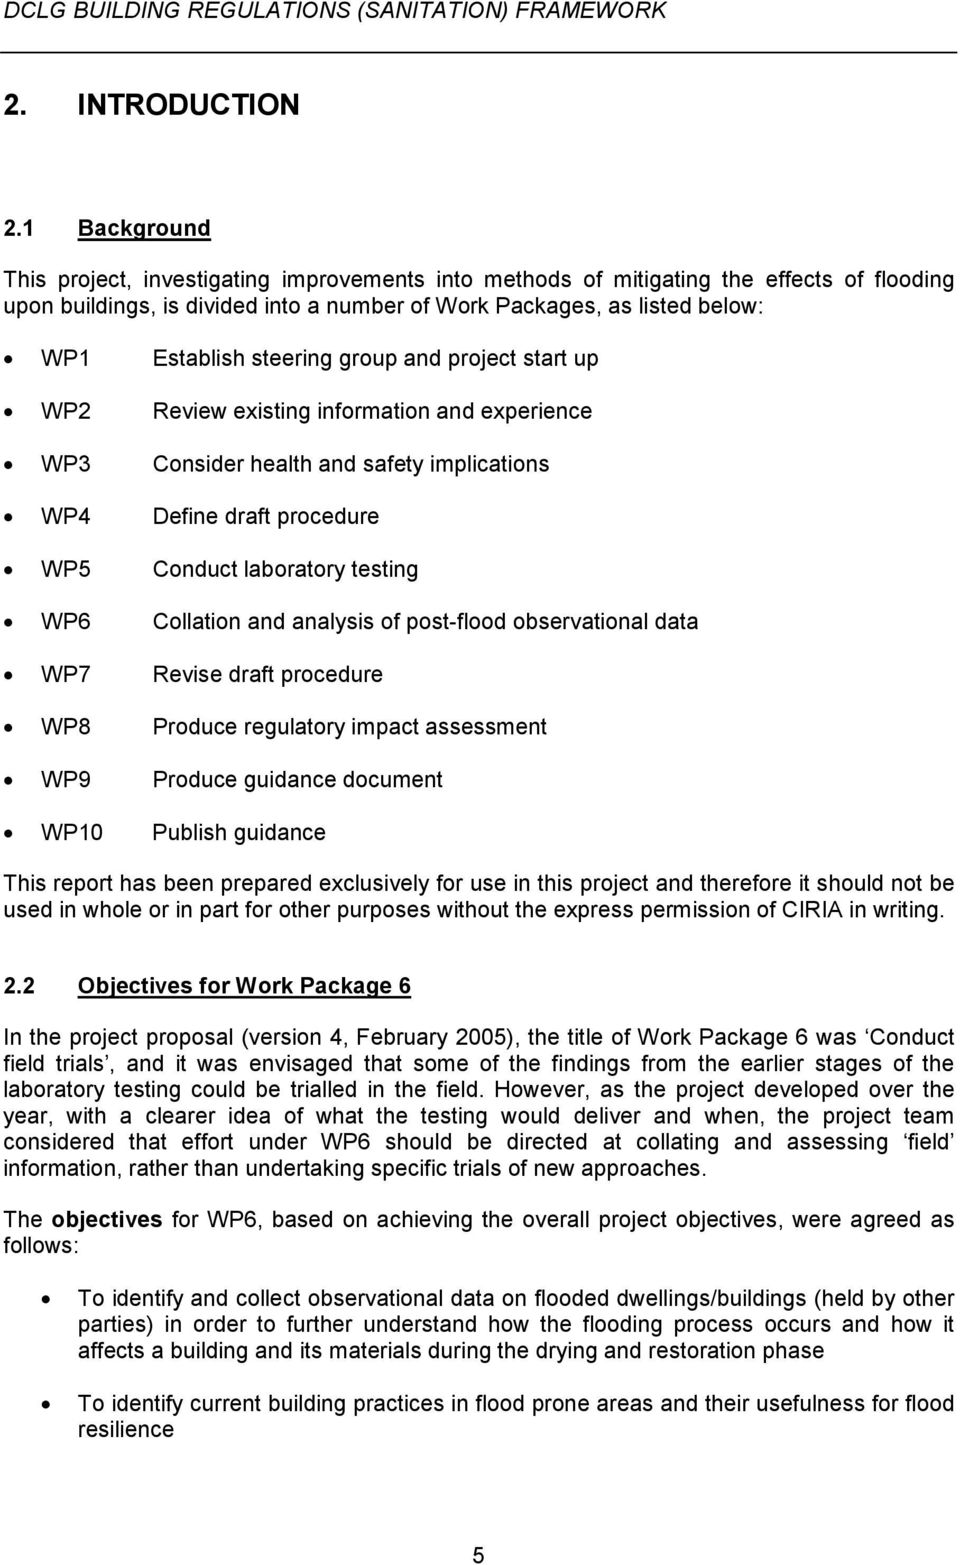 steering group and project start up WP2 Review existing information and experience WP3 Consider health and safety implications WP4 Define draft procedure WP5 Conduct laboratory testing WP6 Collation